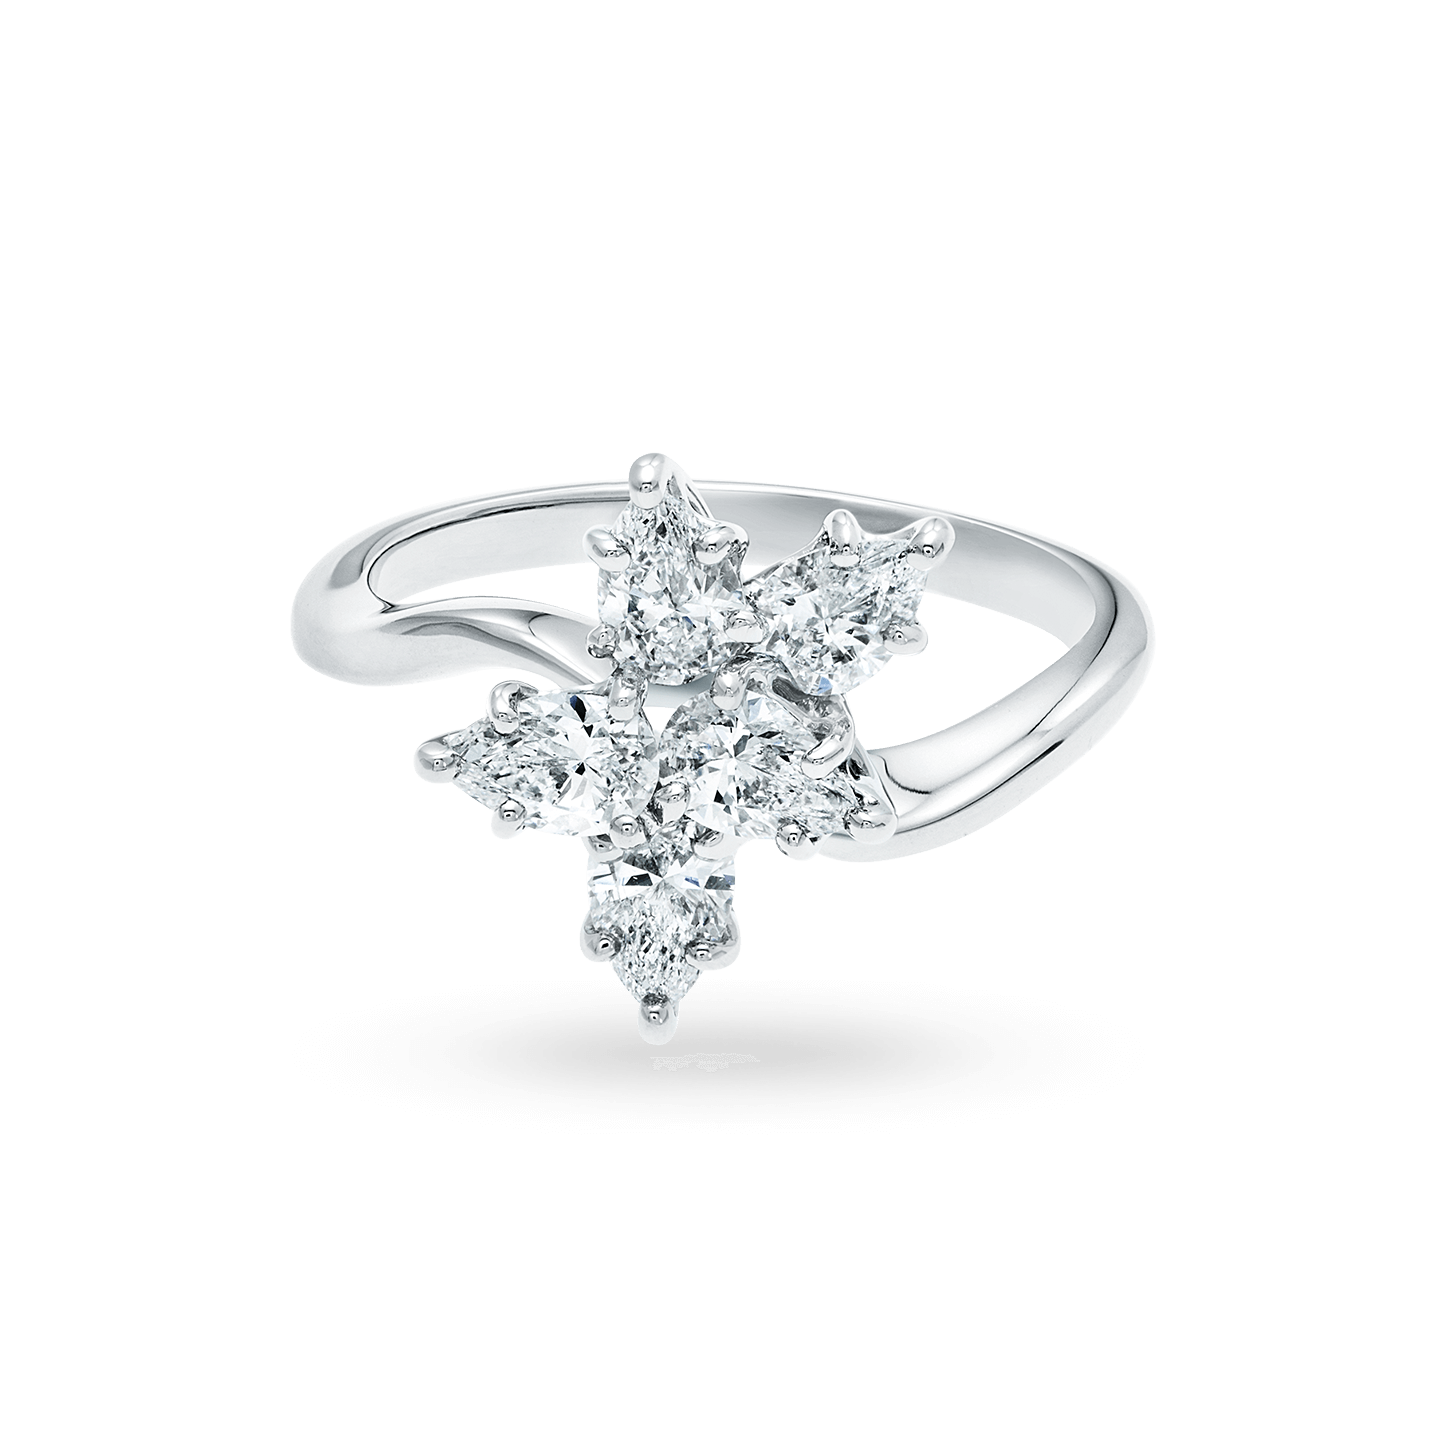 Winston Cluster Small Diamond Ring, Product Image 1